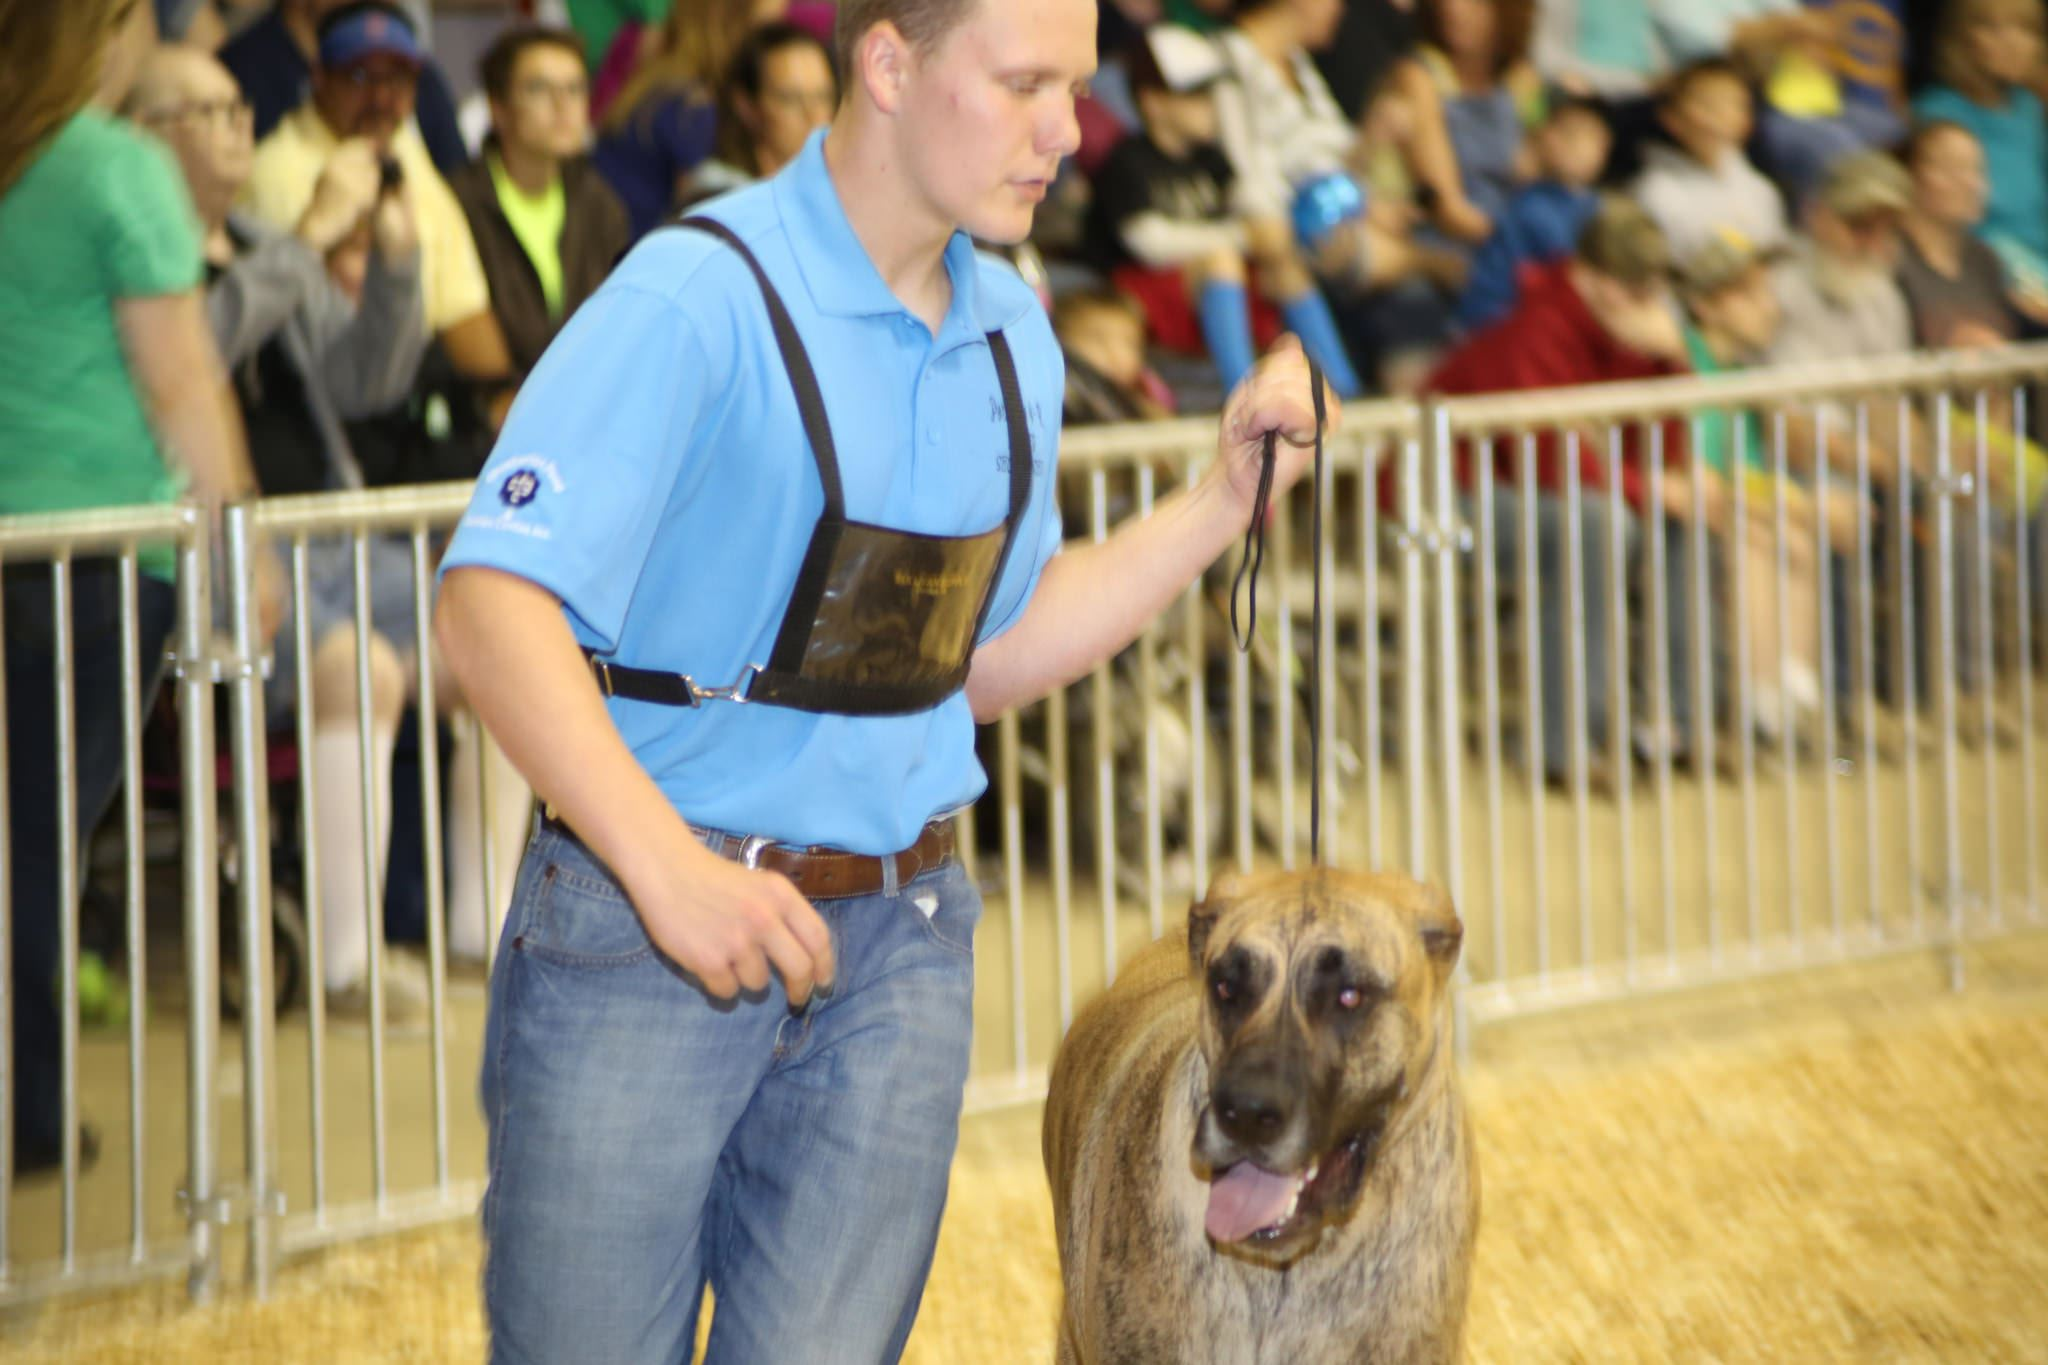 Dog handler with dog at dog show